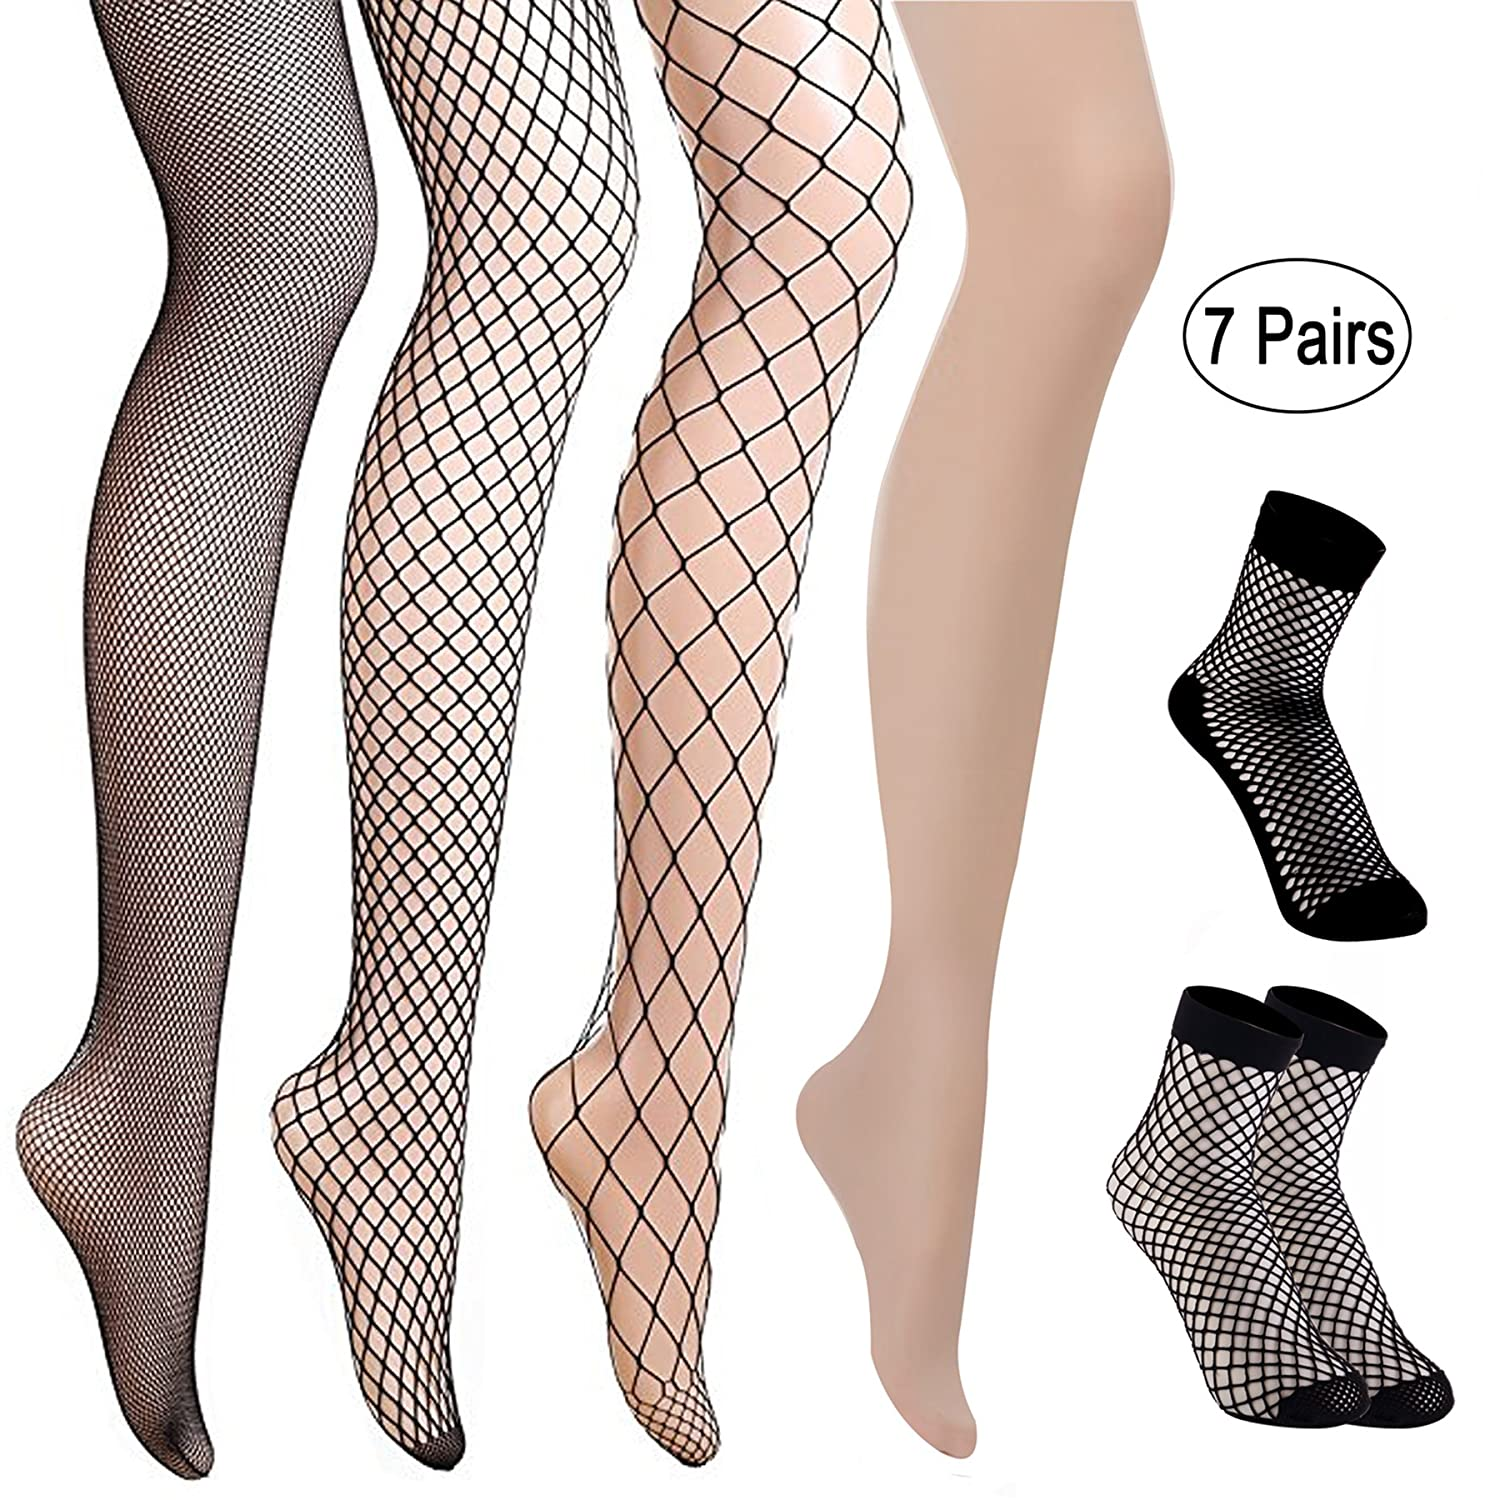 Fishnets and from friends to lovers